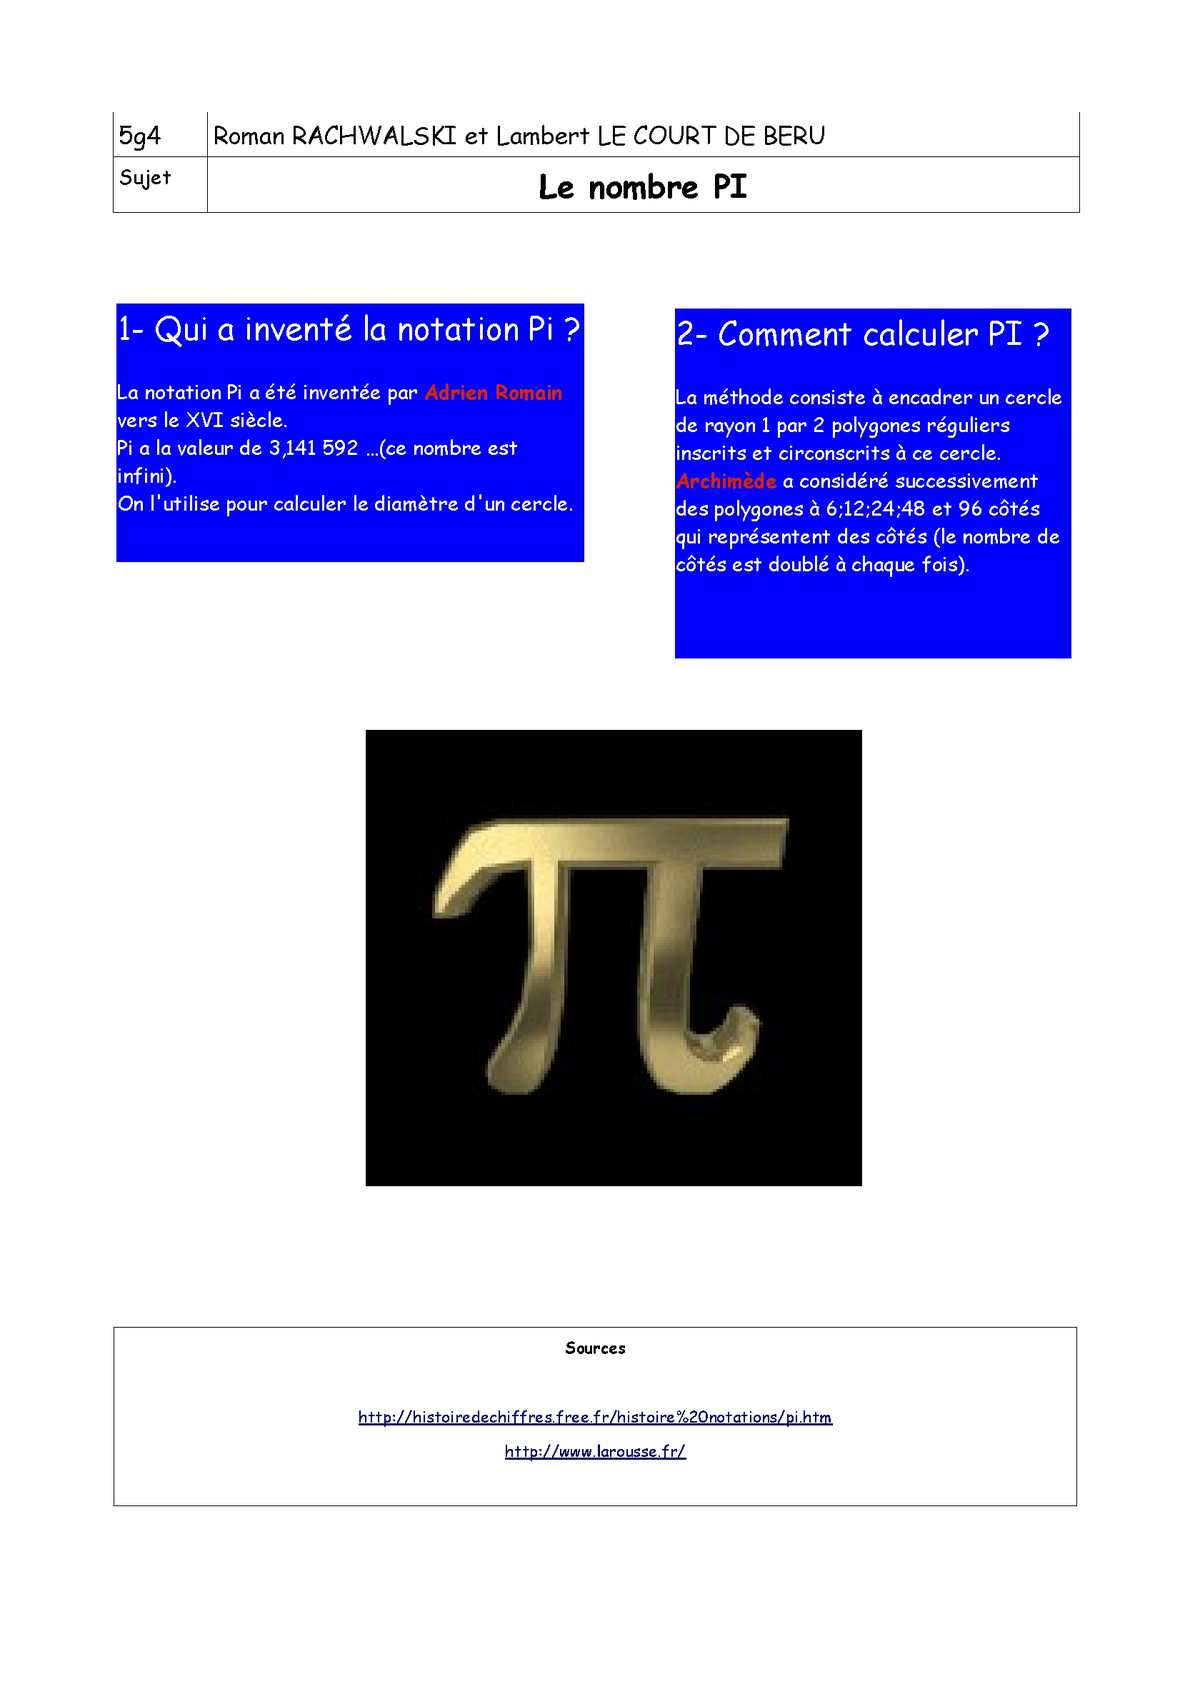 E Book De Culture Math Matique Calameo Downloader